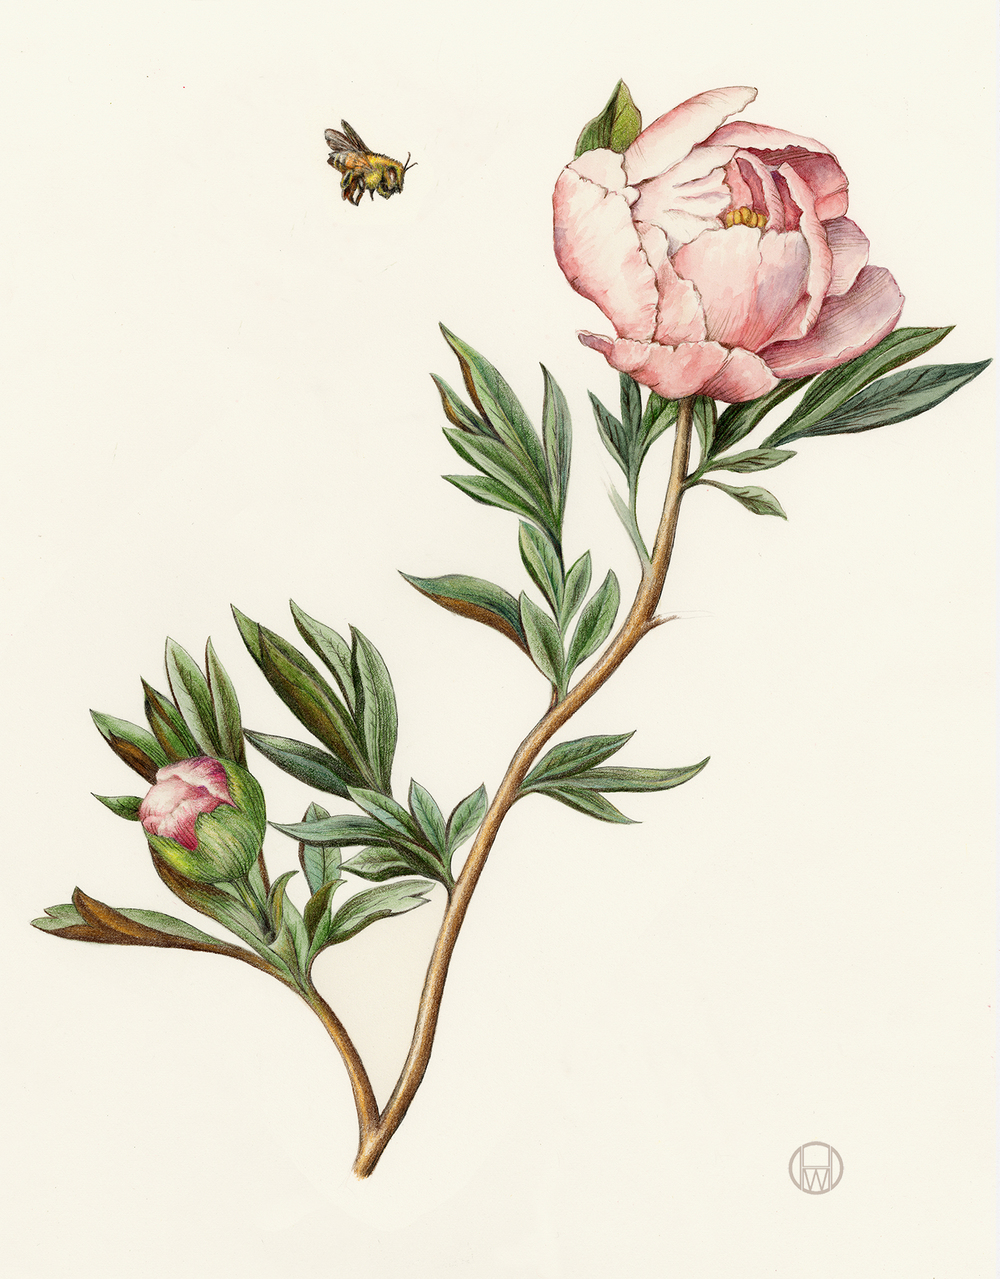 Drawn peony vintage rose Peony the illustrations flowers Wendy